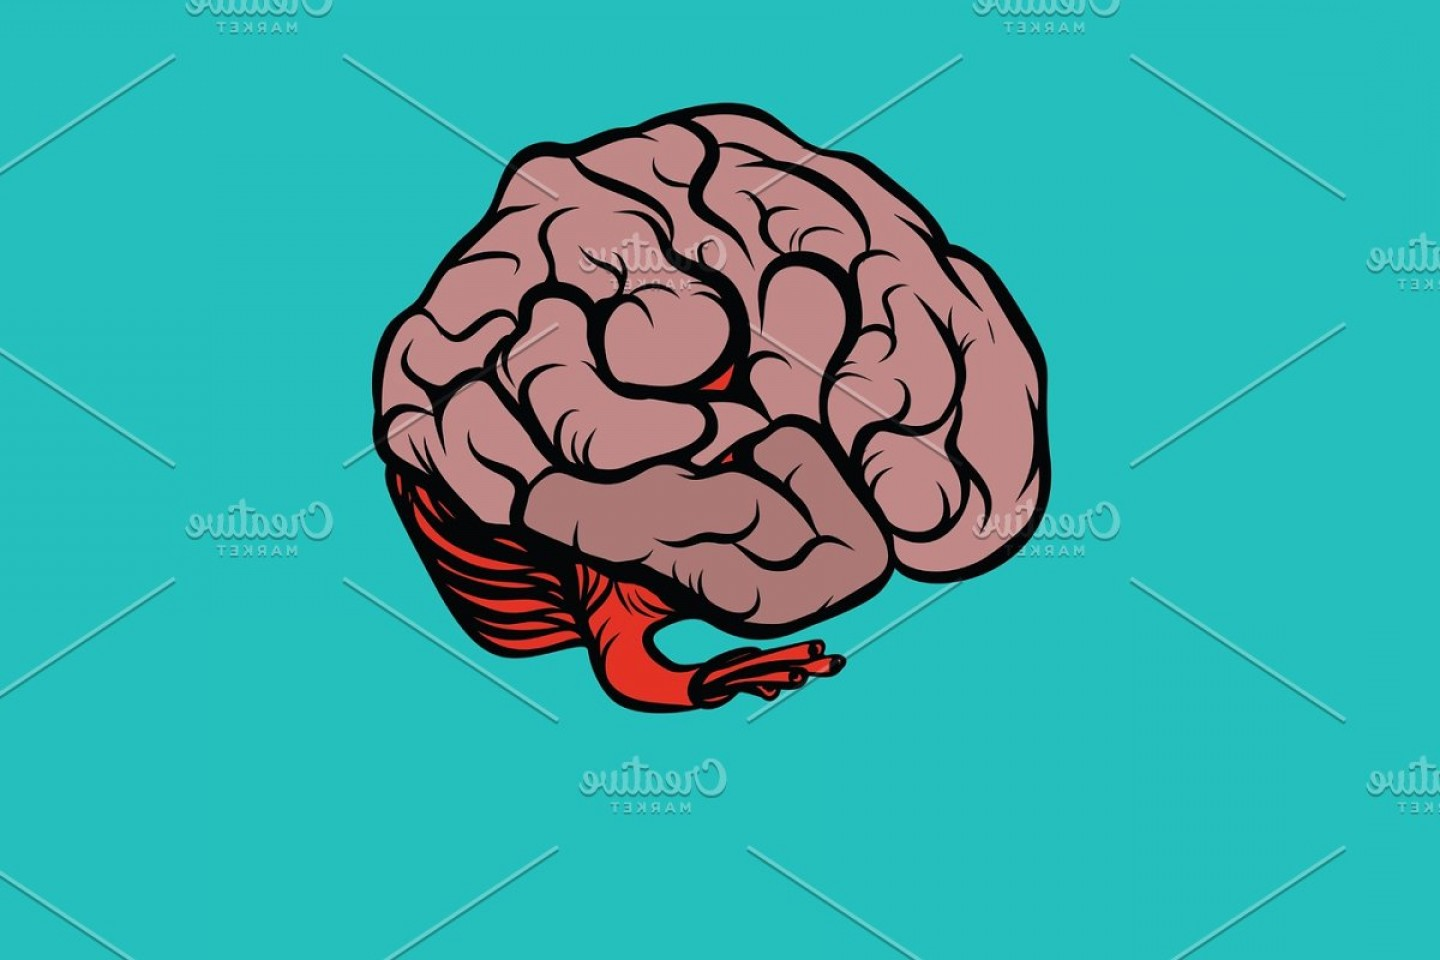 Brain Vector Art: The Human Brain Vector Illustration